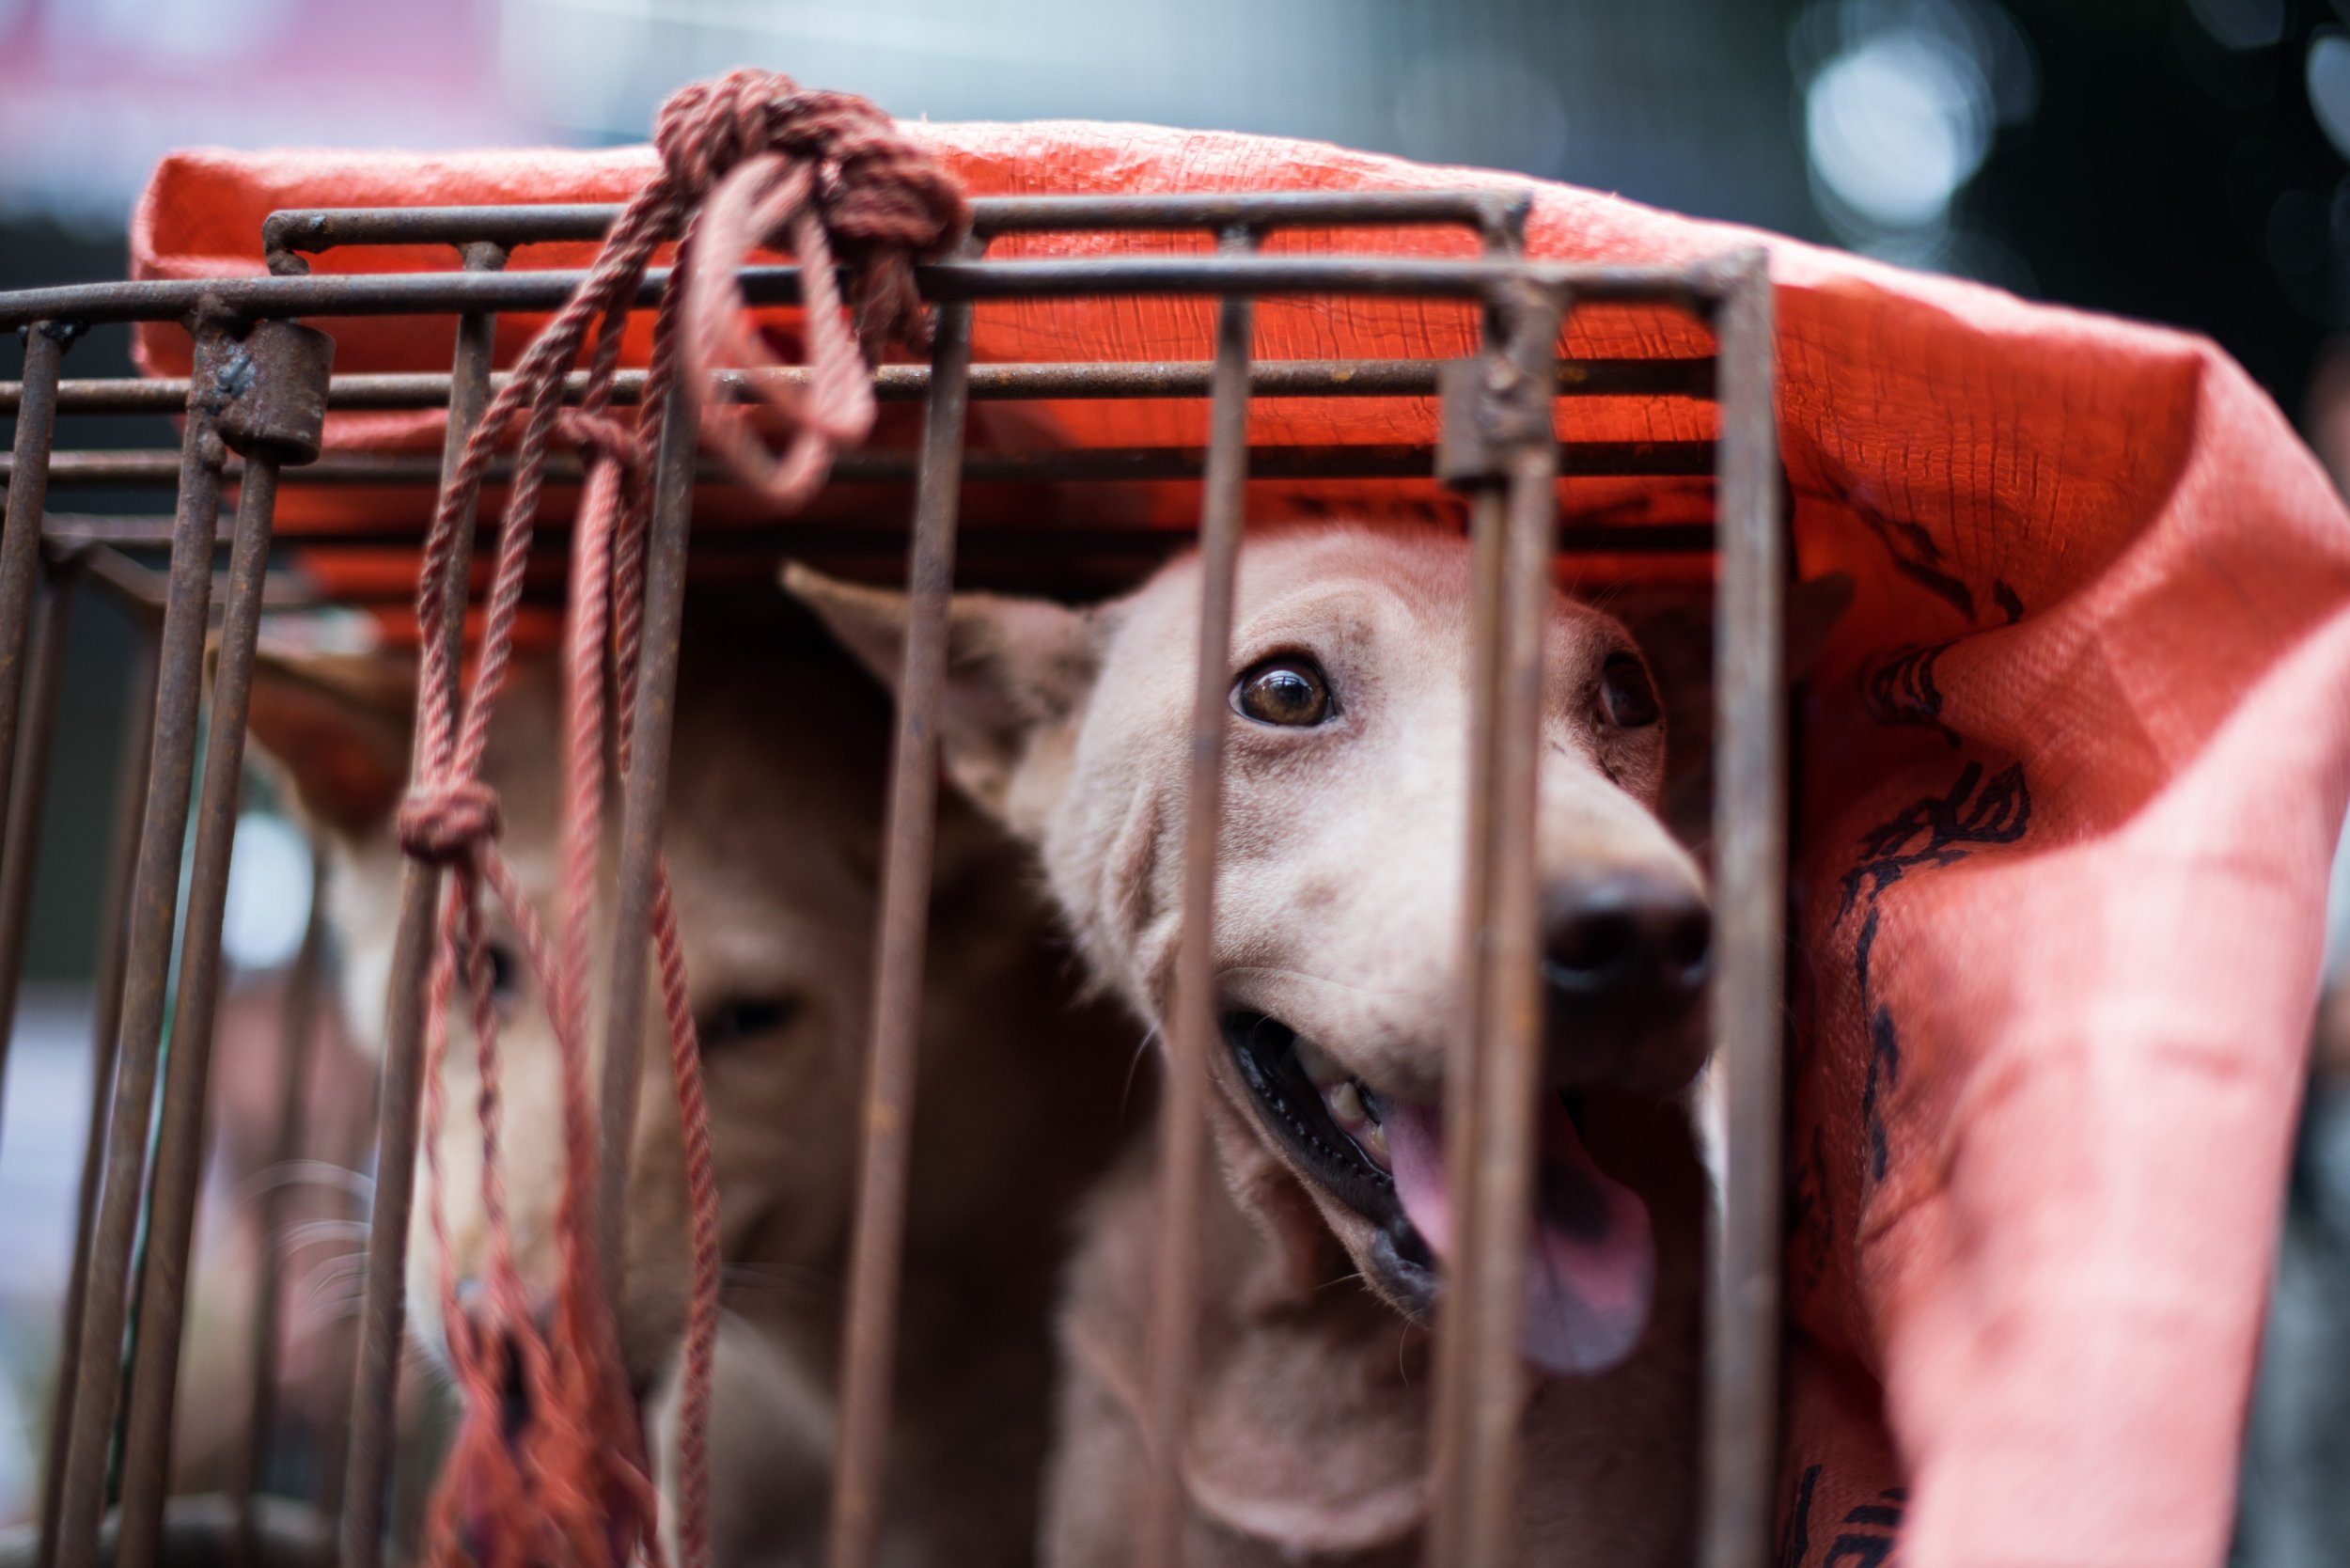 A dog looks out from its cage at a stall as it is displayed by a vendor as he waits for customers during a dog meat festival at a market in Yulin, in southern China's Guangin Yulin, in southern China's Guangxi province on June 22, 2015. The city holds an annual festival devoted to the animal's meat on the summer solstice which has provoked an increasing backlash from animal protection activists. AFP PHOTO / JOHANNES EISELE (Photo credit should read JOHANNES EISELE/AFP/Getty Images)